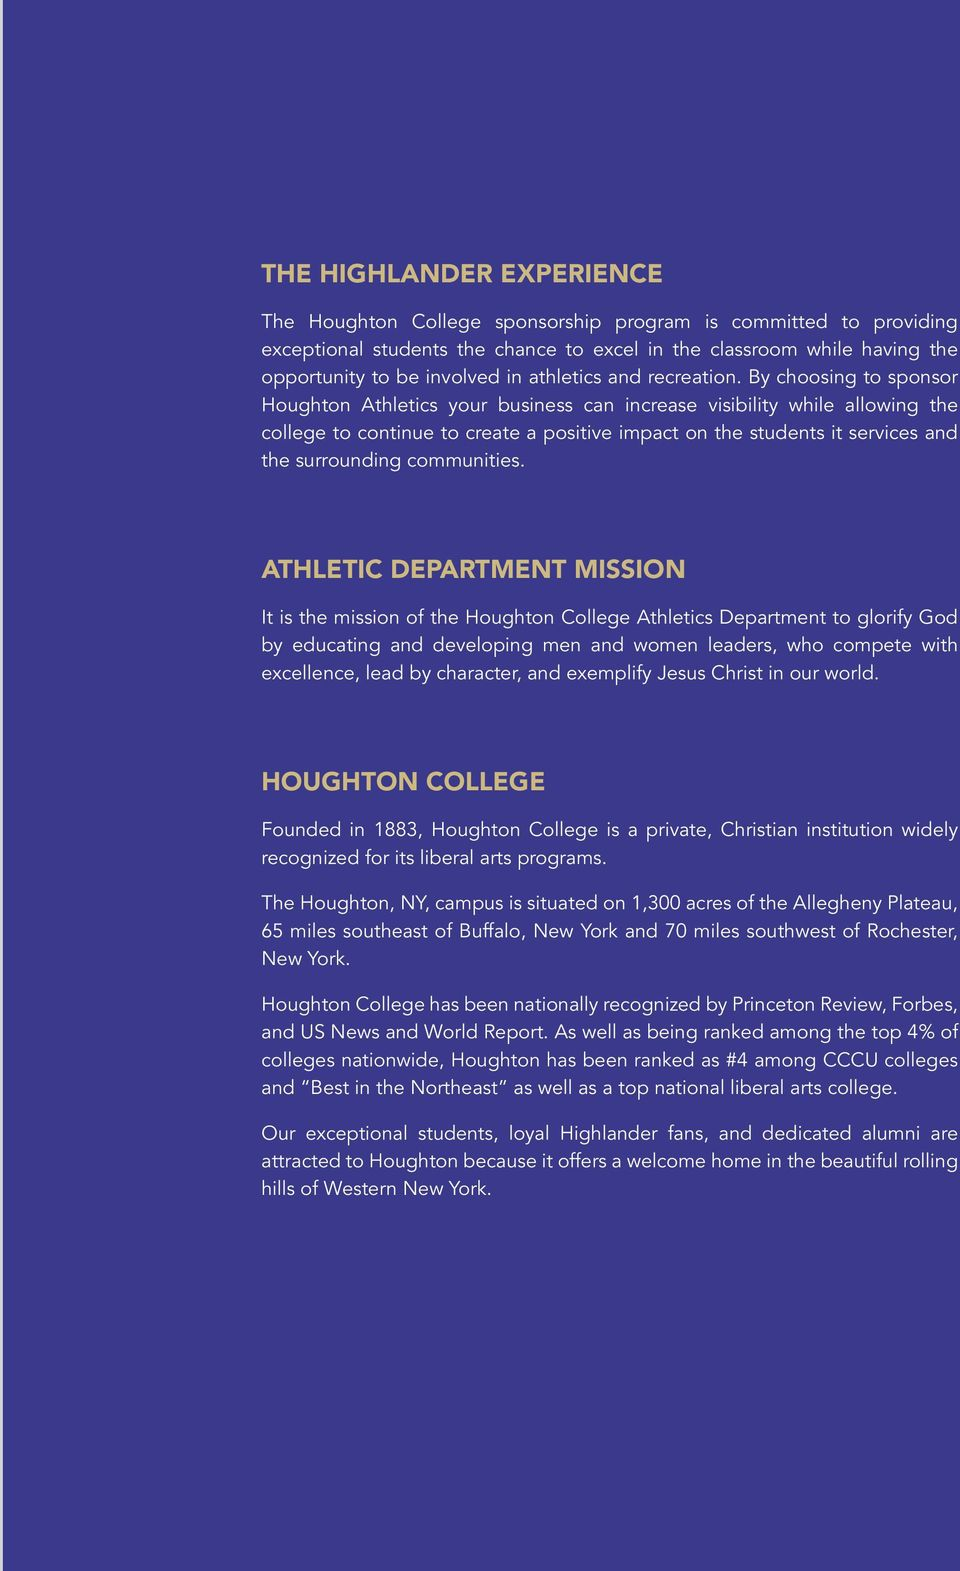 By choosing to sponsor Houghton Athletics your business can increase visibility while allowing the college to continue to create a positive impact on the students it services and the surrounding